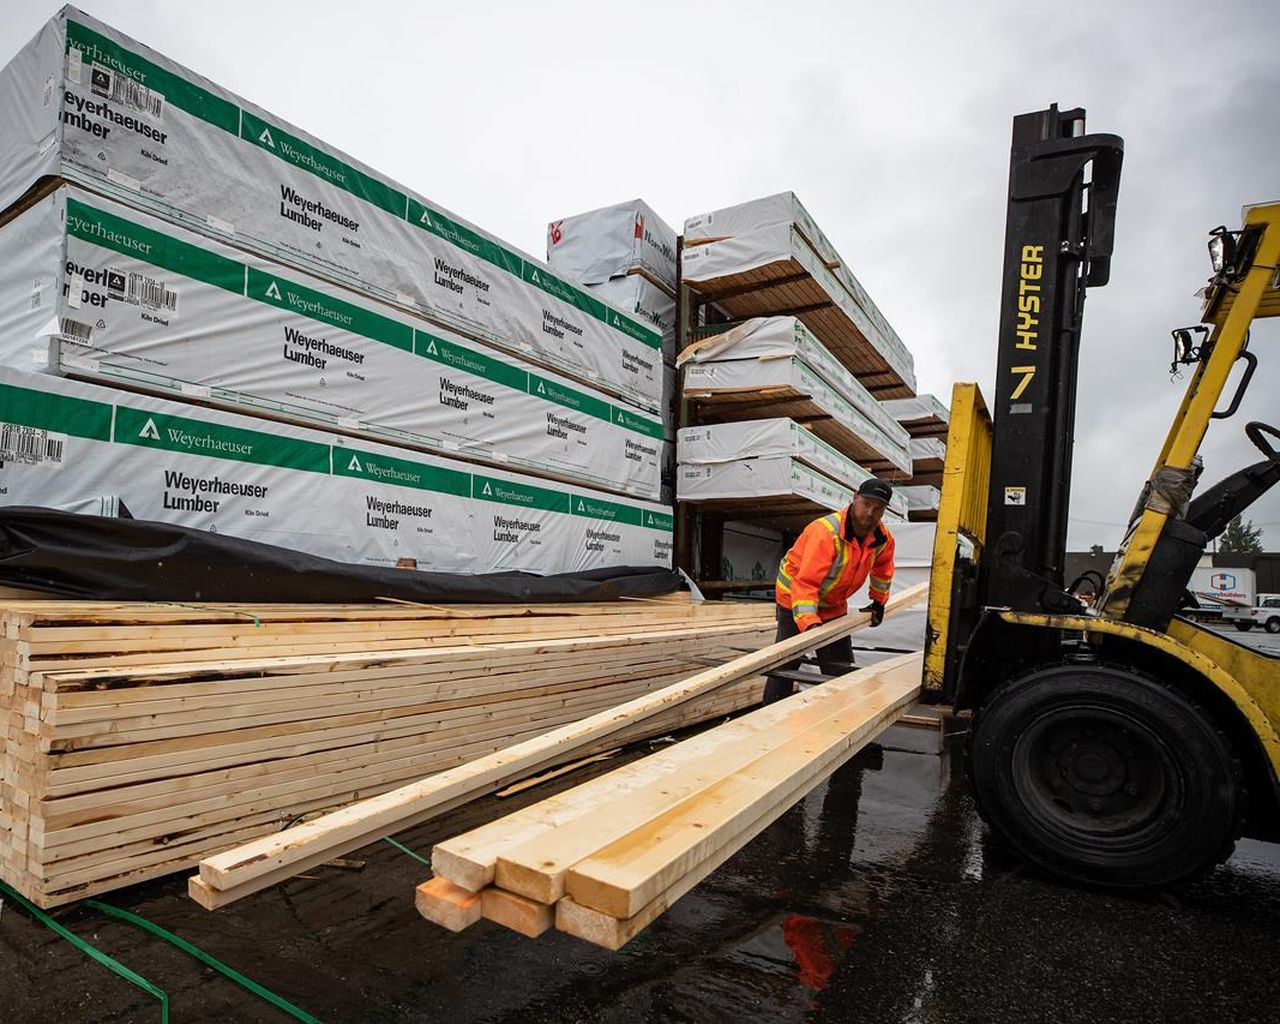 , U.S.A doubles tariffs on Canadian softwood lumber imports